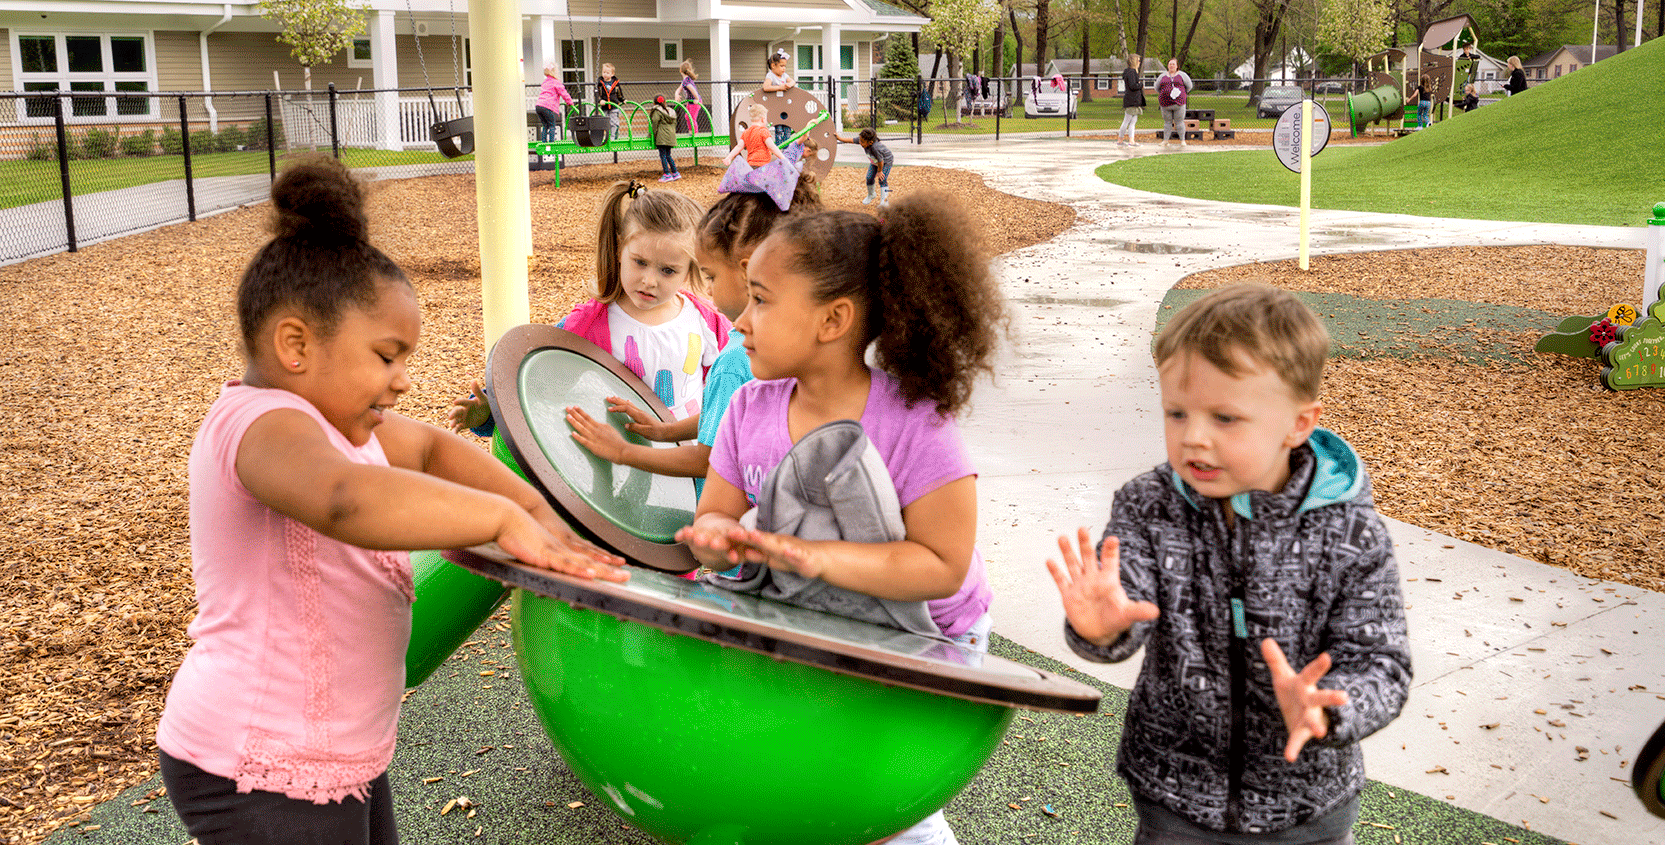 PHASD-Early-Childhood-Education-Center-Playground-2_1665x845